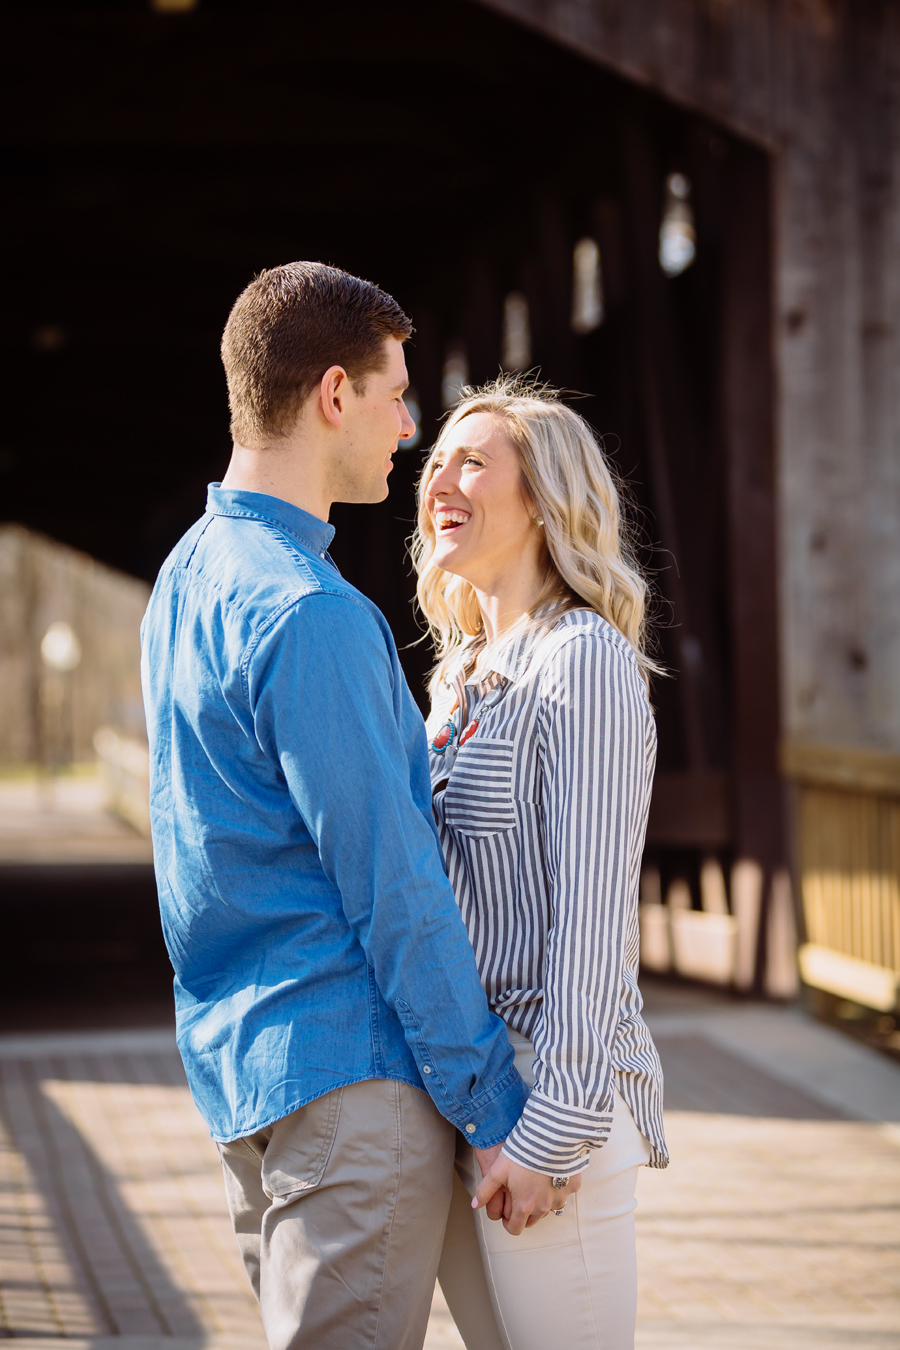 engagement-photography-downtown-grand-rapids24.jpg